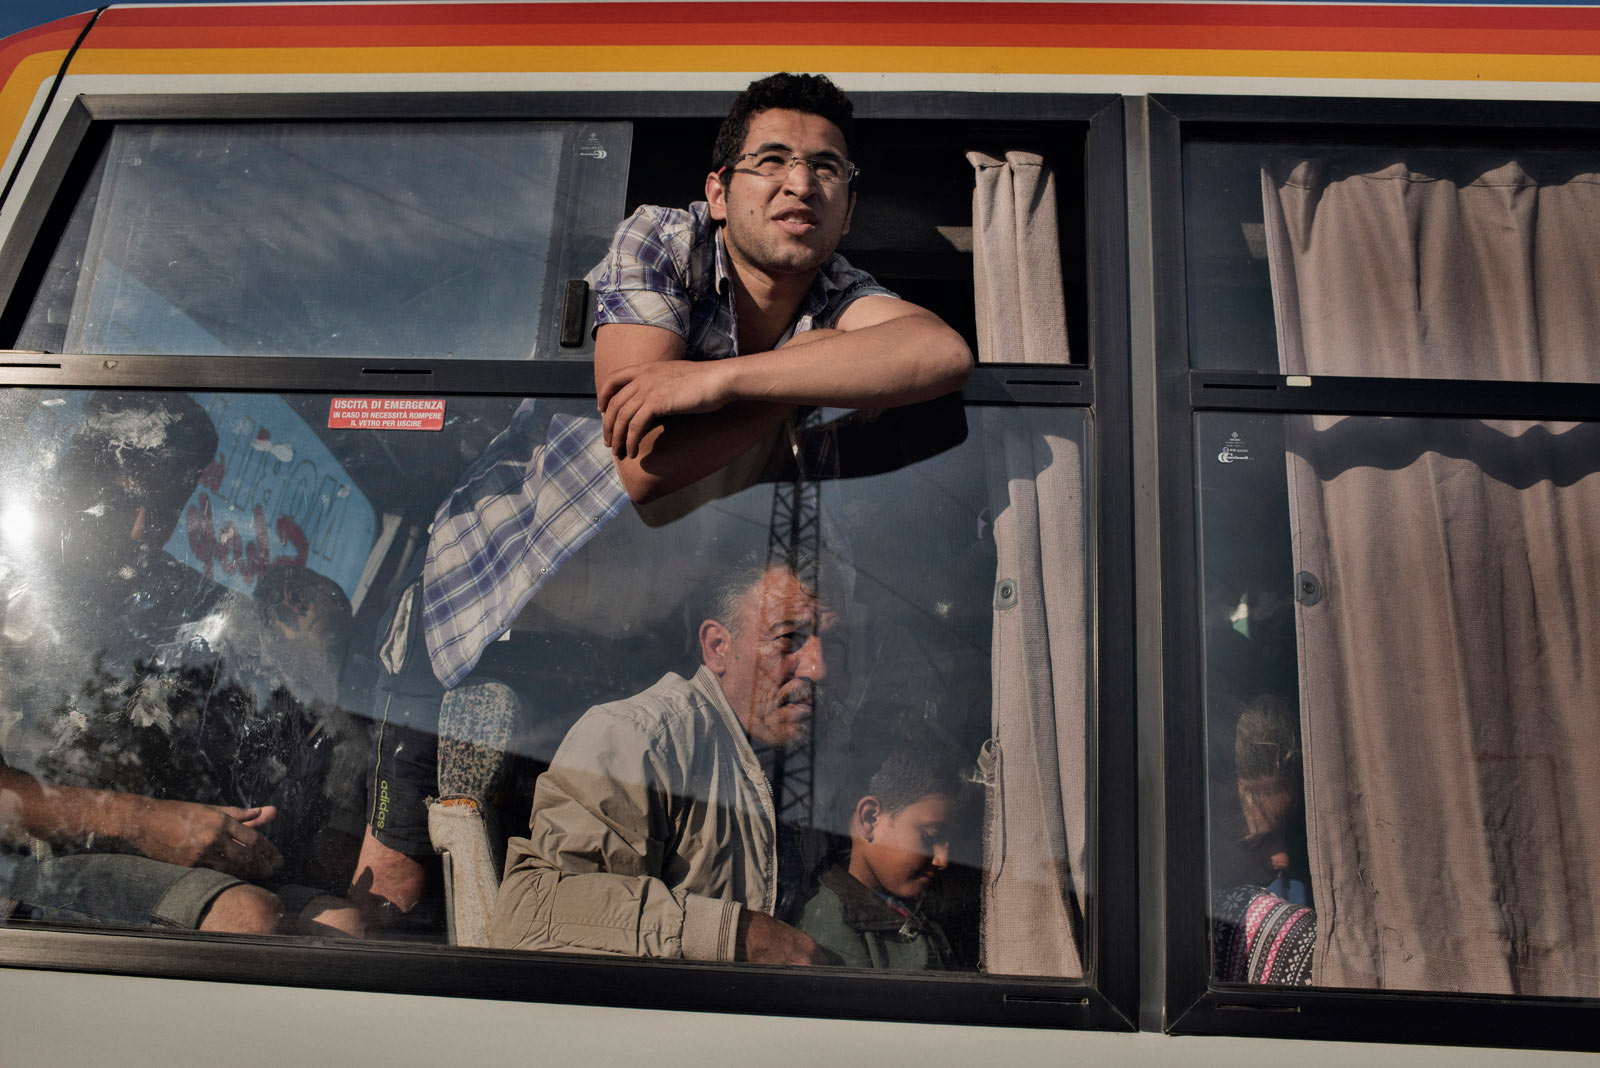 Ghafek Aiad Alsaho, a Syrian migrant, looks through the window of a police bus after border guards caught him crossing illegally from Serbia into Hungary on his way into the European Union.                               Roszke, Hungary, Aug. 29, 2015.